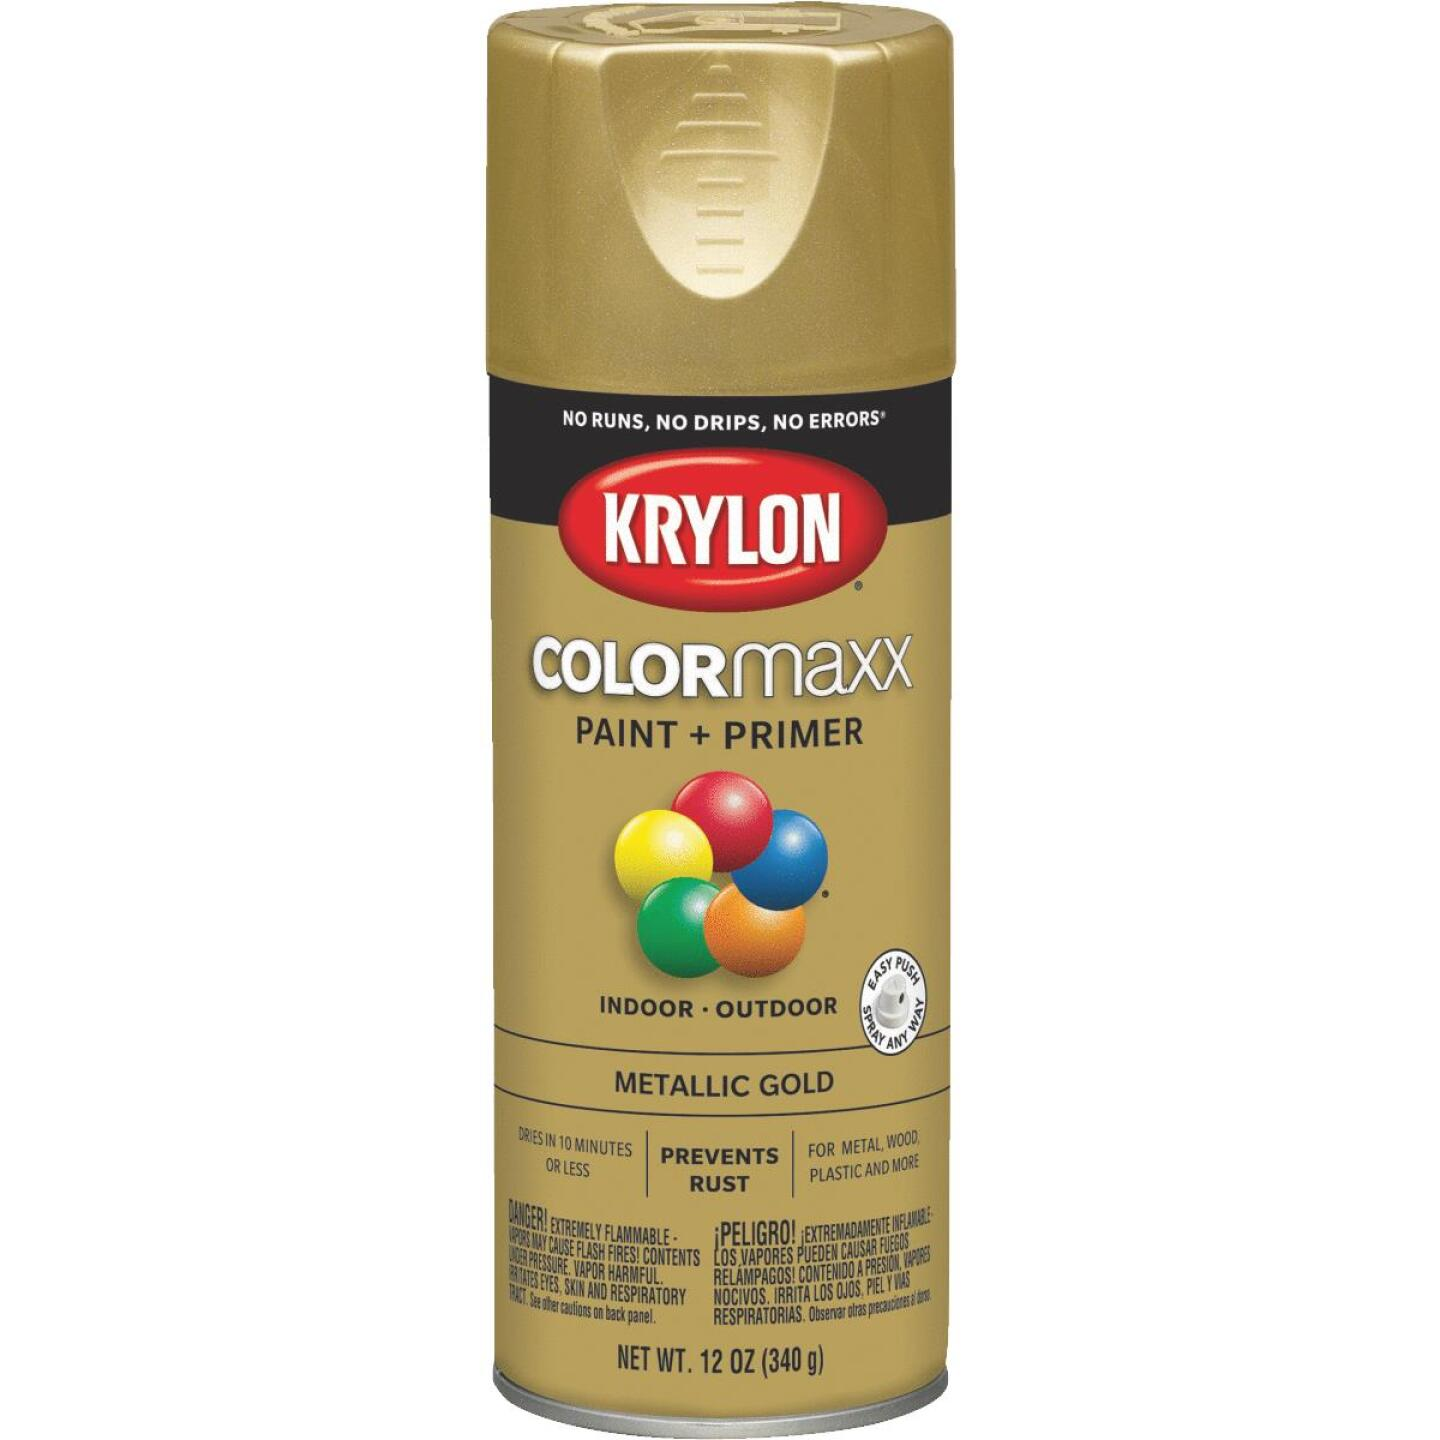 Krylon ColorMaxx 11 Oz. Metallic Gloss Spray Paint, Gold Image 1